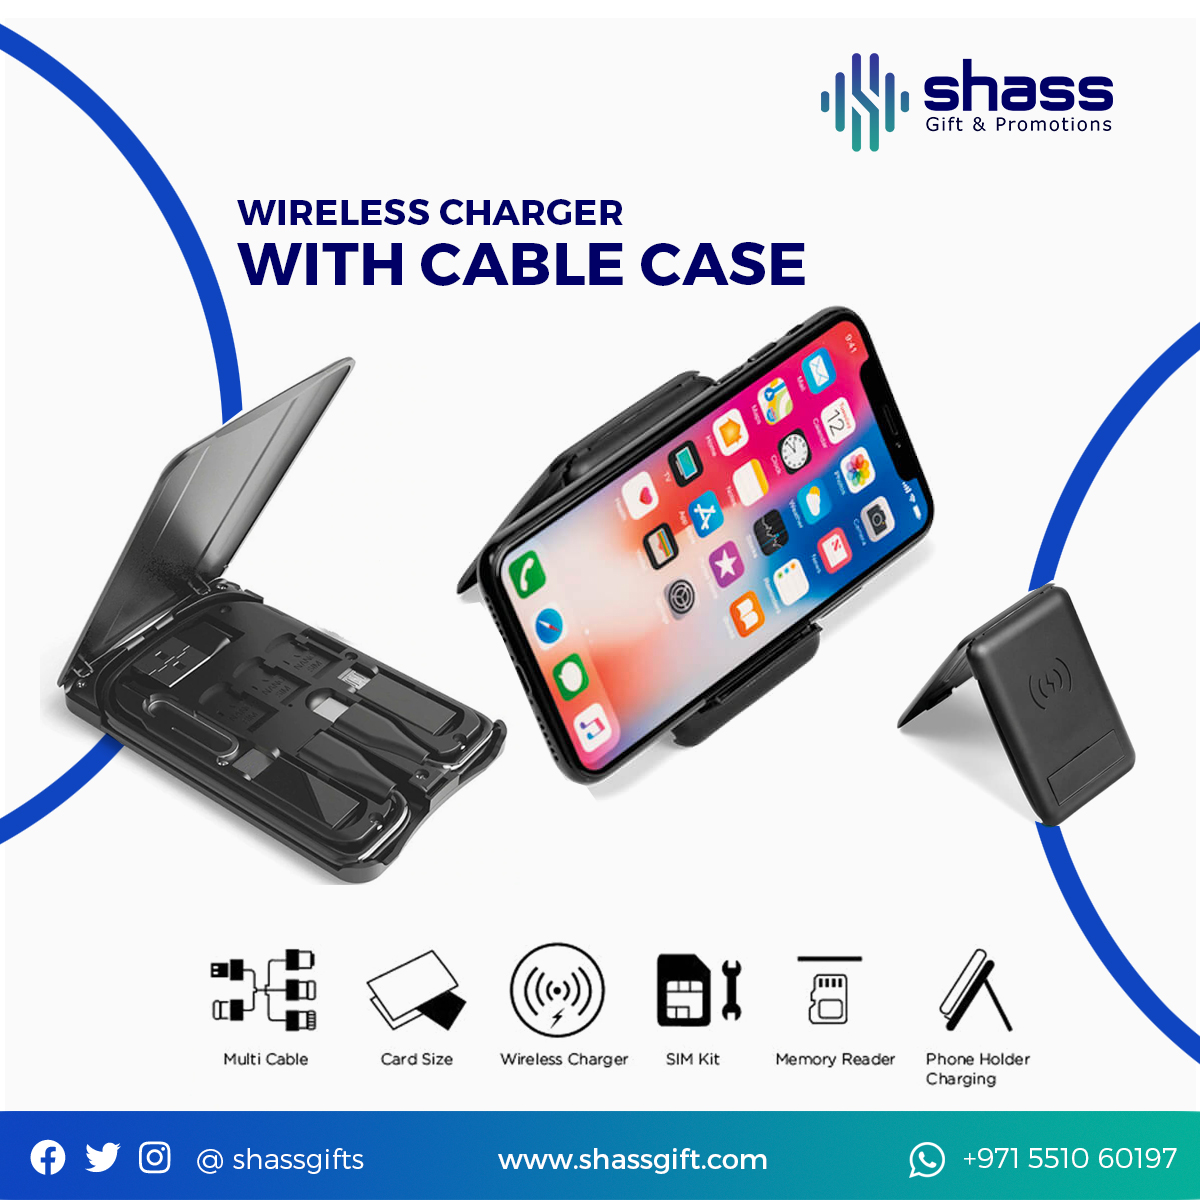 Wireless Charger With Cable Case